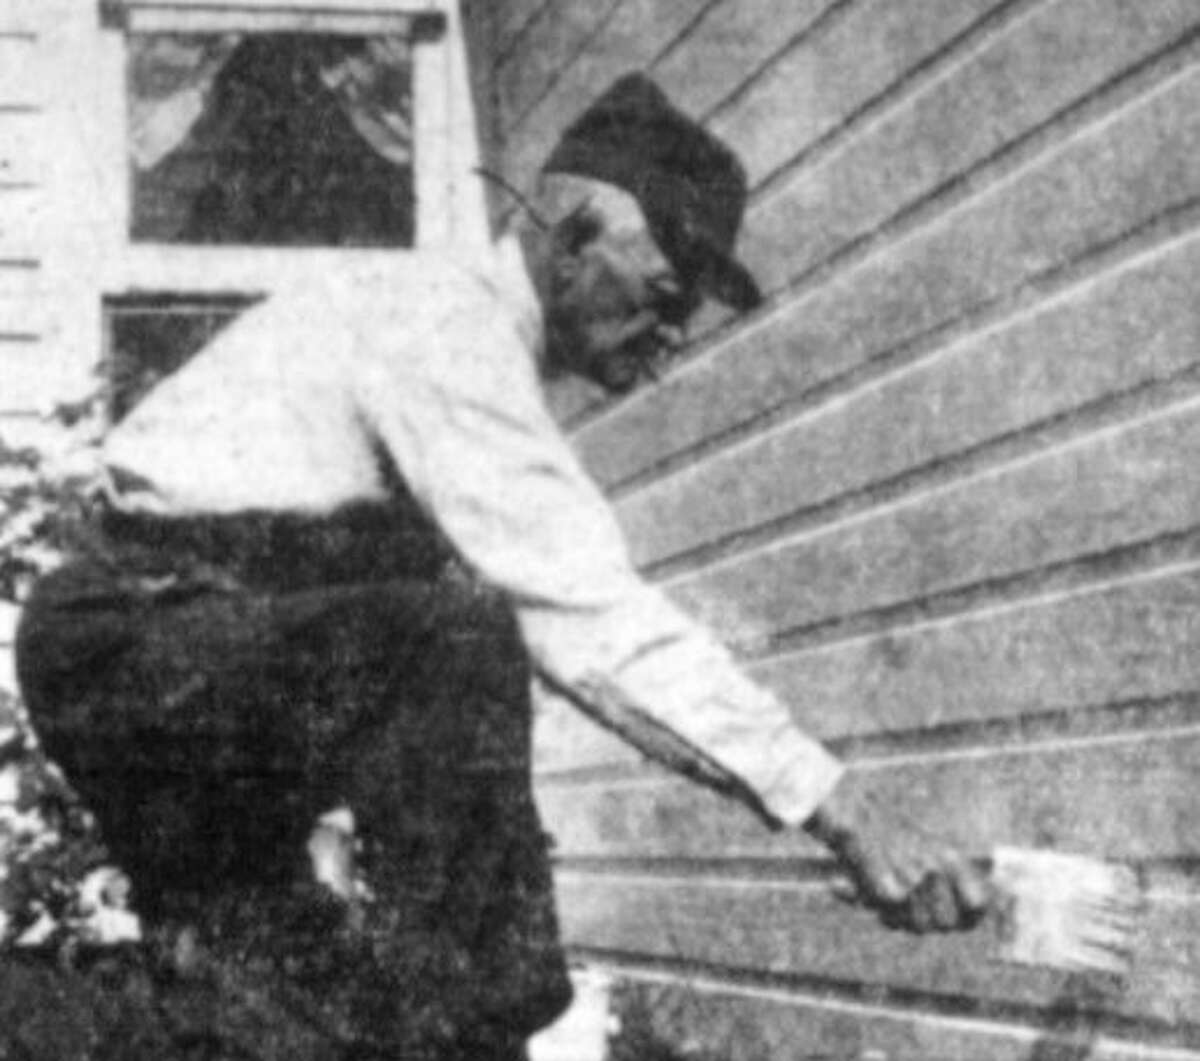 Moving to Luther as a boy in 1871, by his 72nd birthday, Joe Bull was still active in the village and his memory was sharp when it came to earlier times. (Courtesy photo)